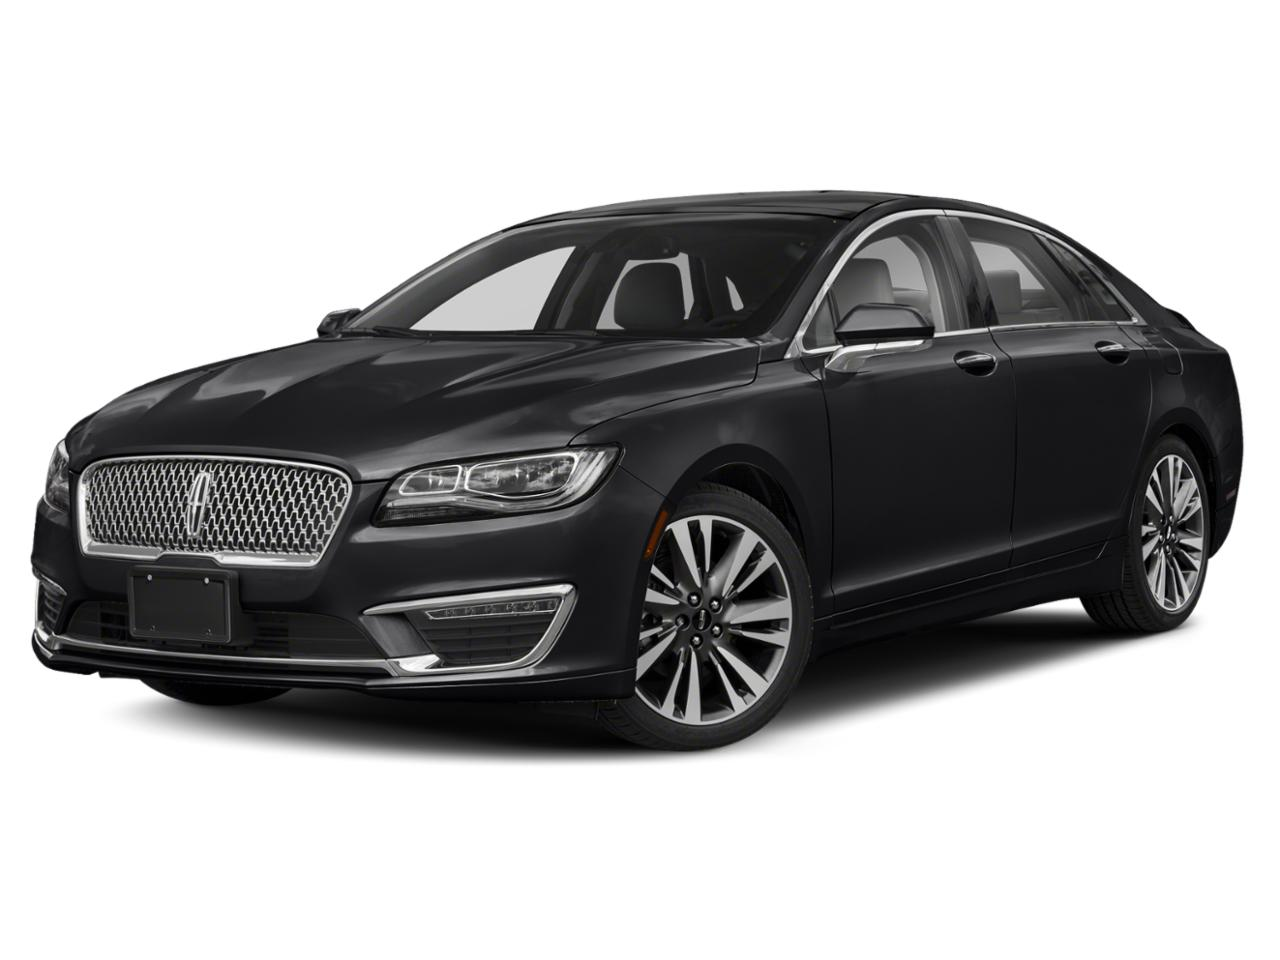 2019 LINCOLN MKZ Vehicle Photo in Wendell, NC 27591